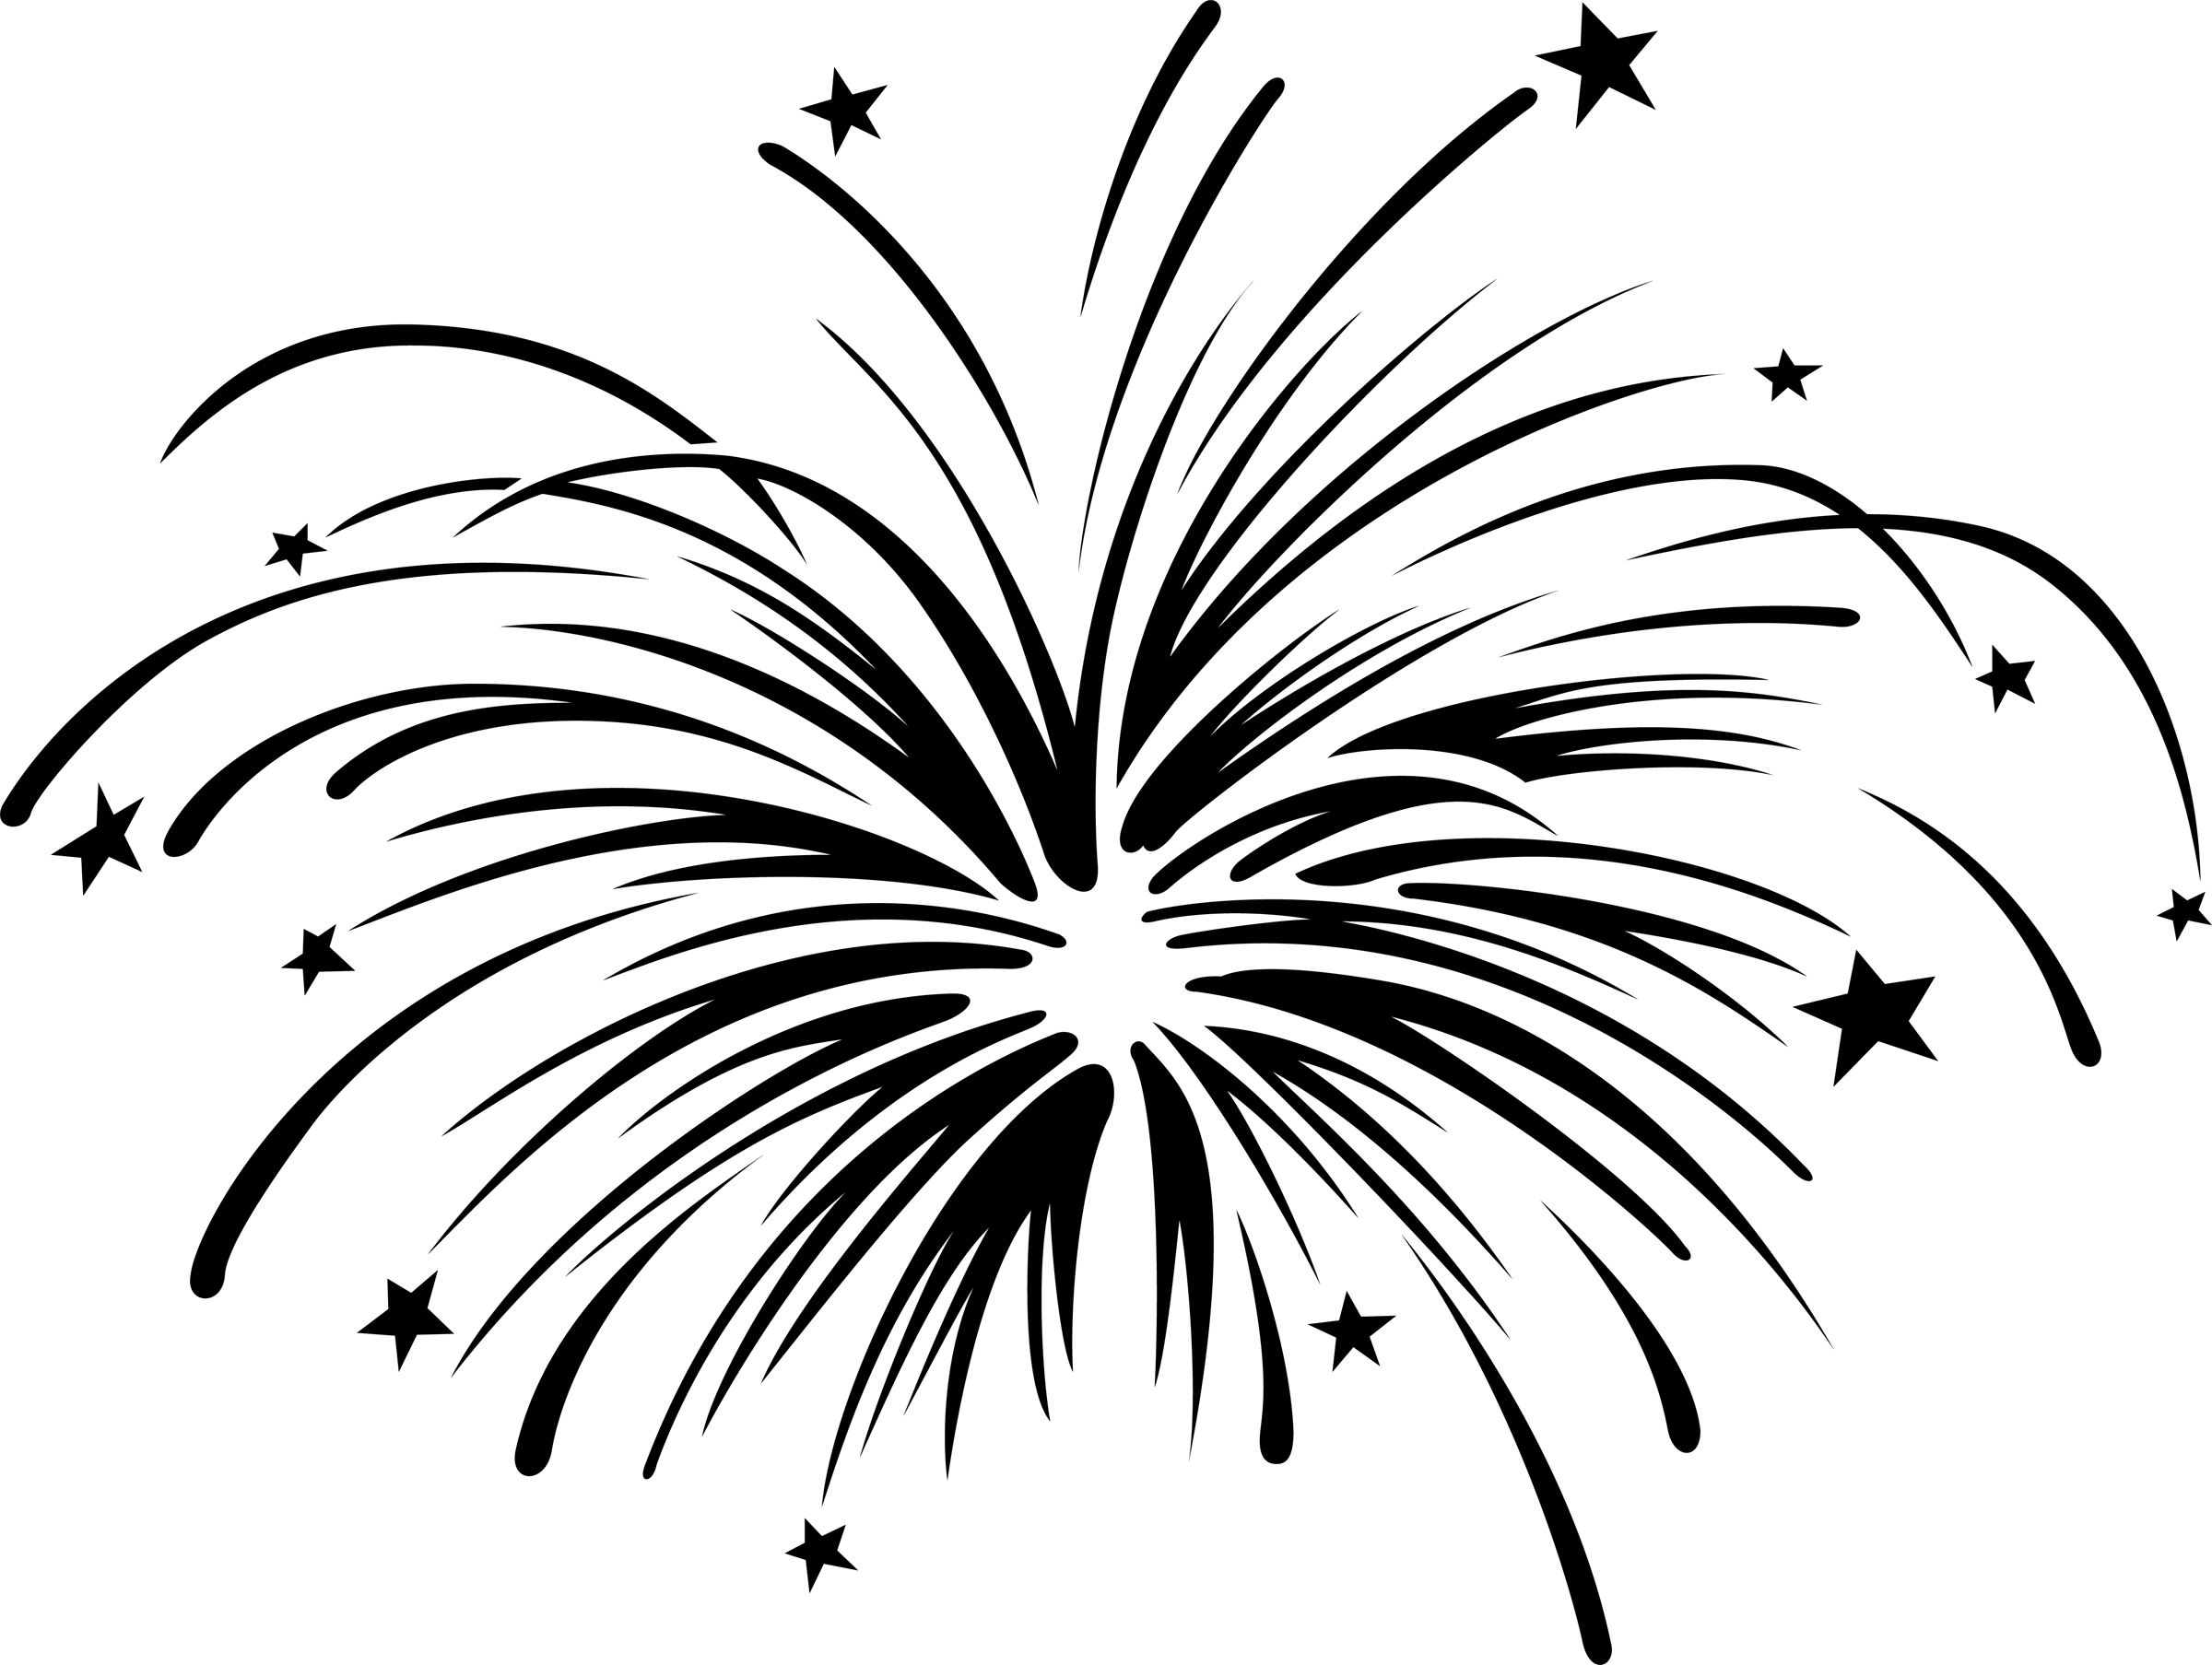 Fireworks clipart With drawing ideas Images Panda